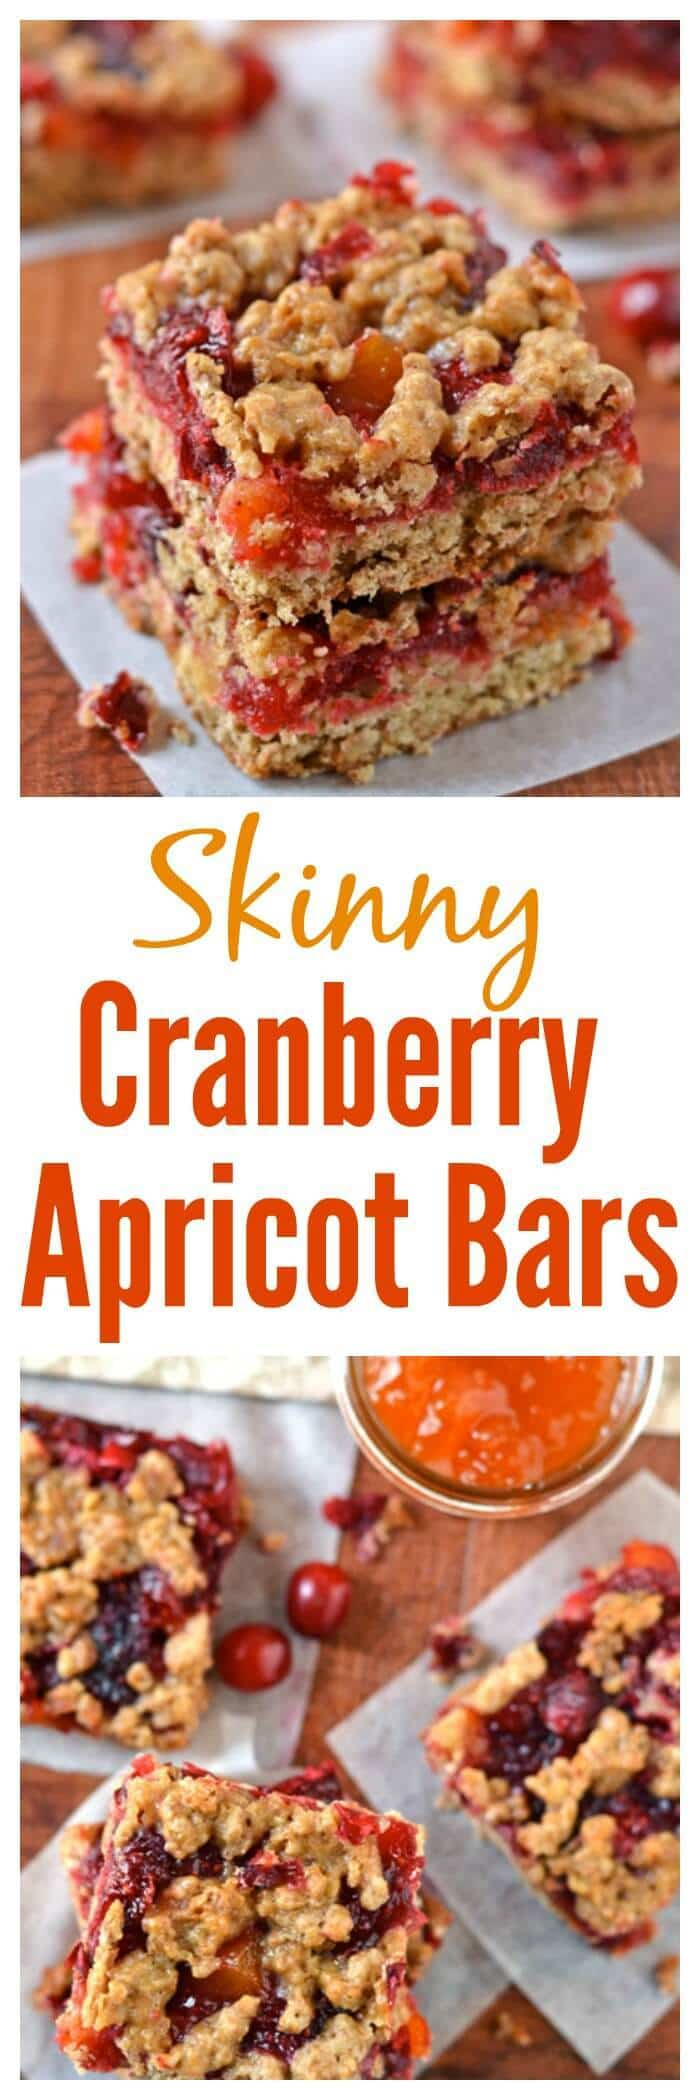 Skinny Cranberry Apricot Bars